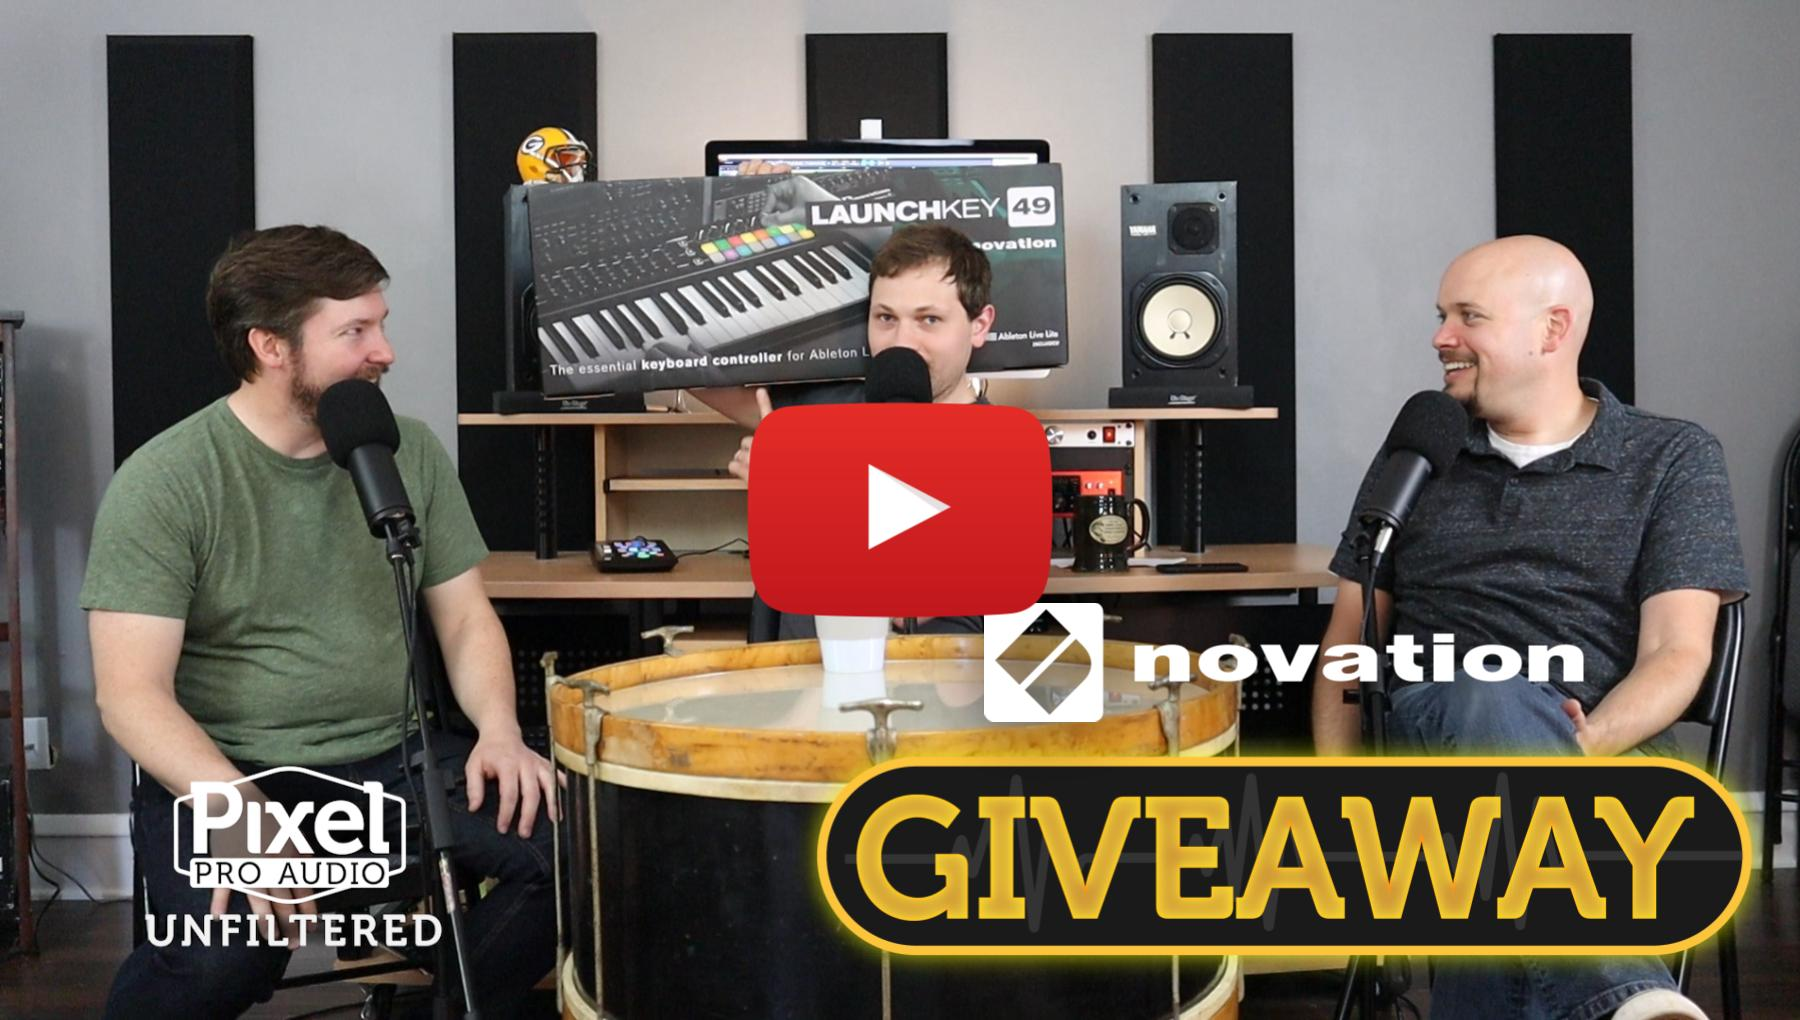 Want to Win a Novation Launchkey 49 RBG?